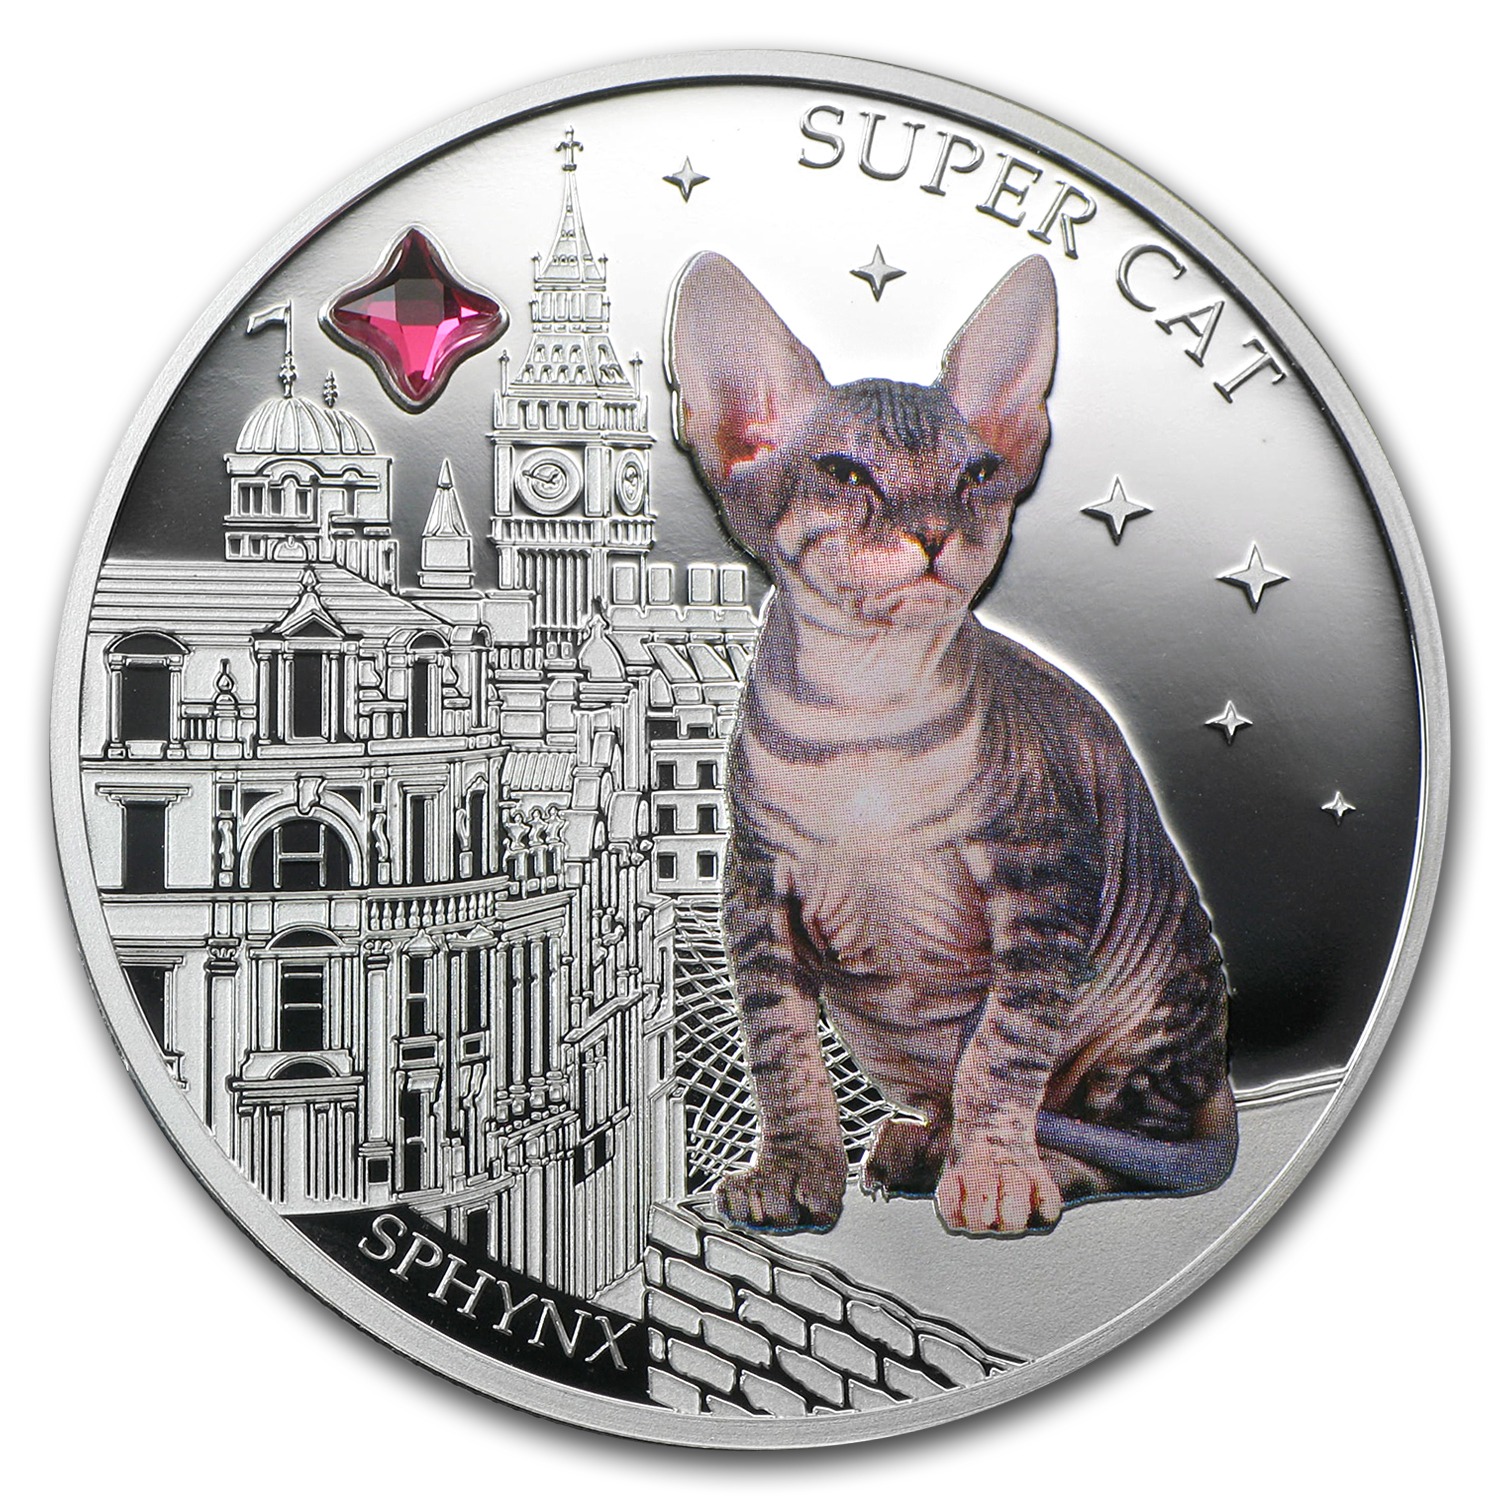 2013 Fiji Silver Dogs & Cats Series Super Cat Sphynx